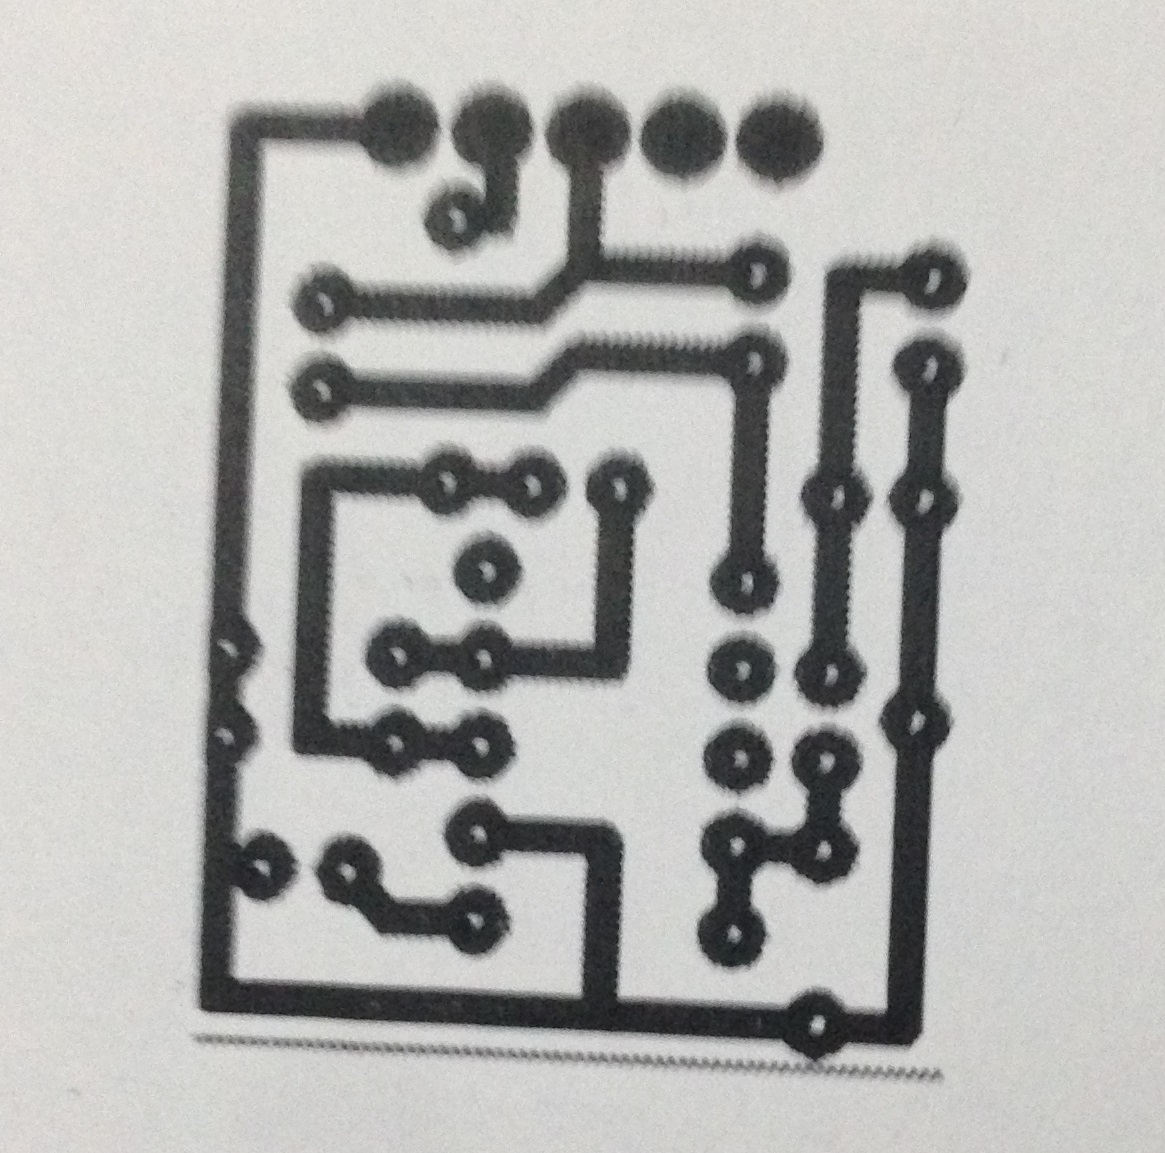 Picture of Print Out the PCB